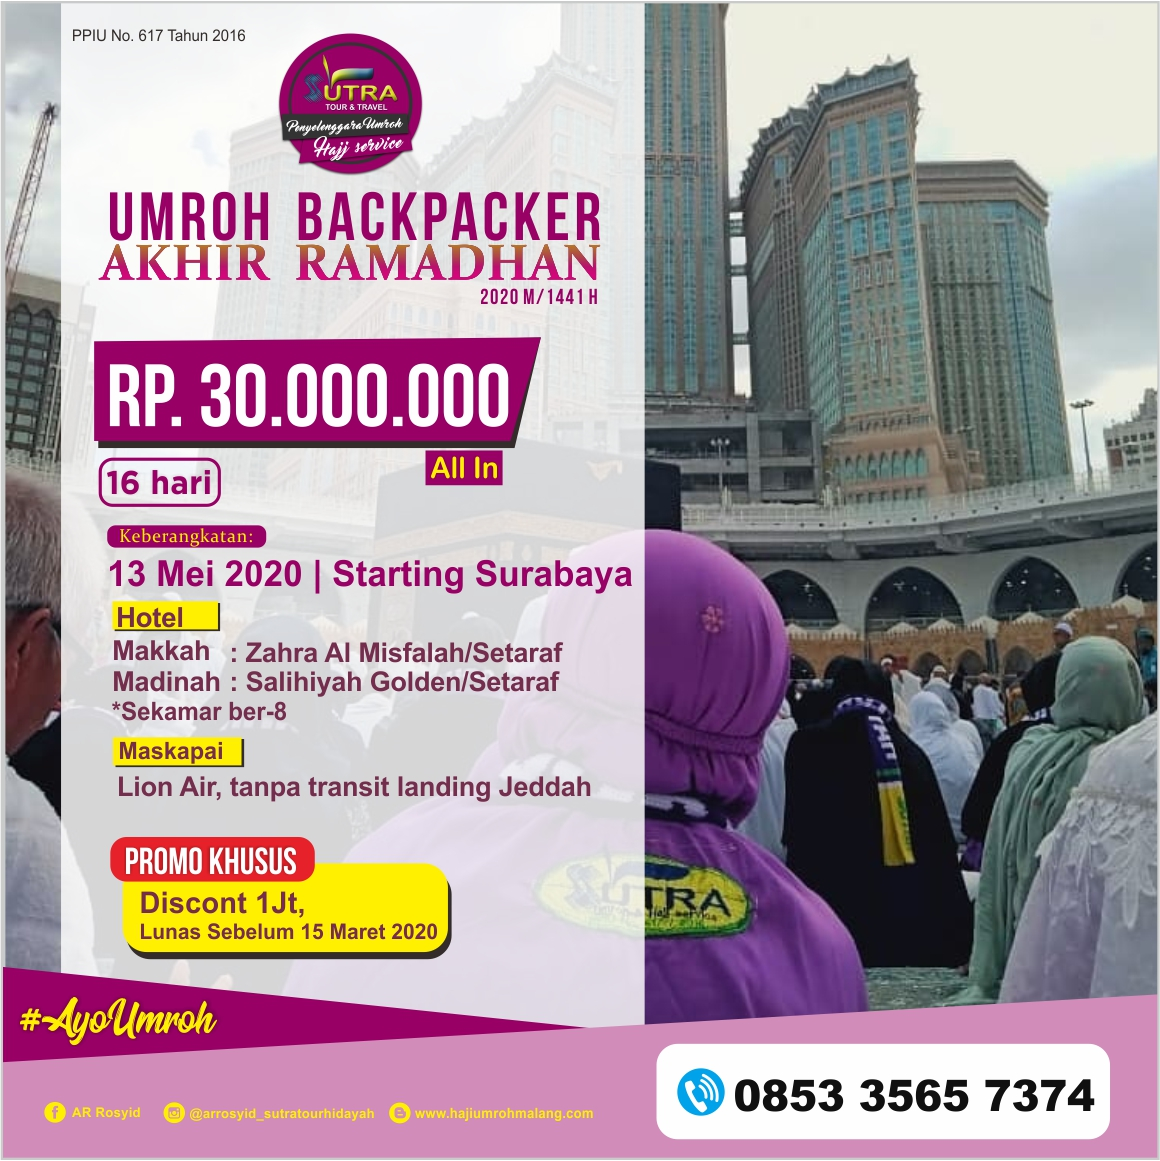 Paket Akhir Ramadhan Backpacker 2020_085335657374